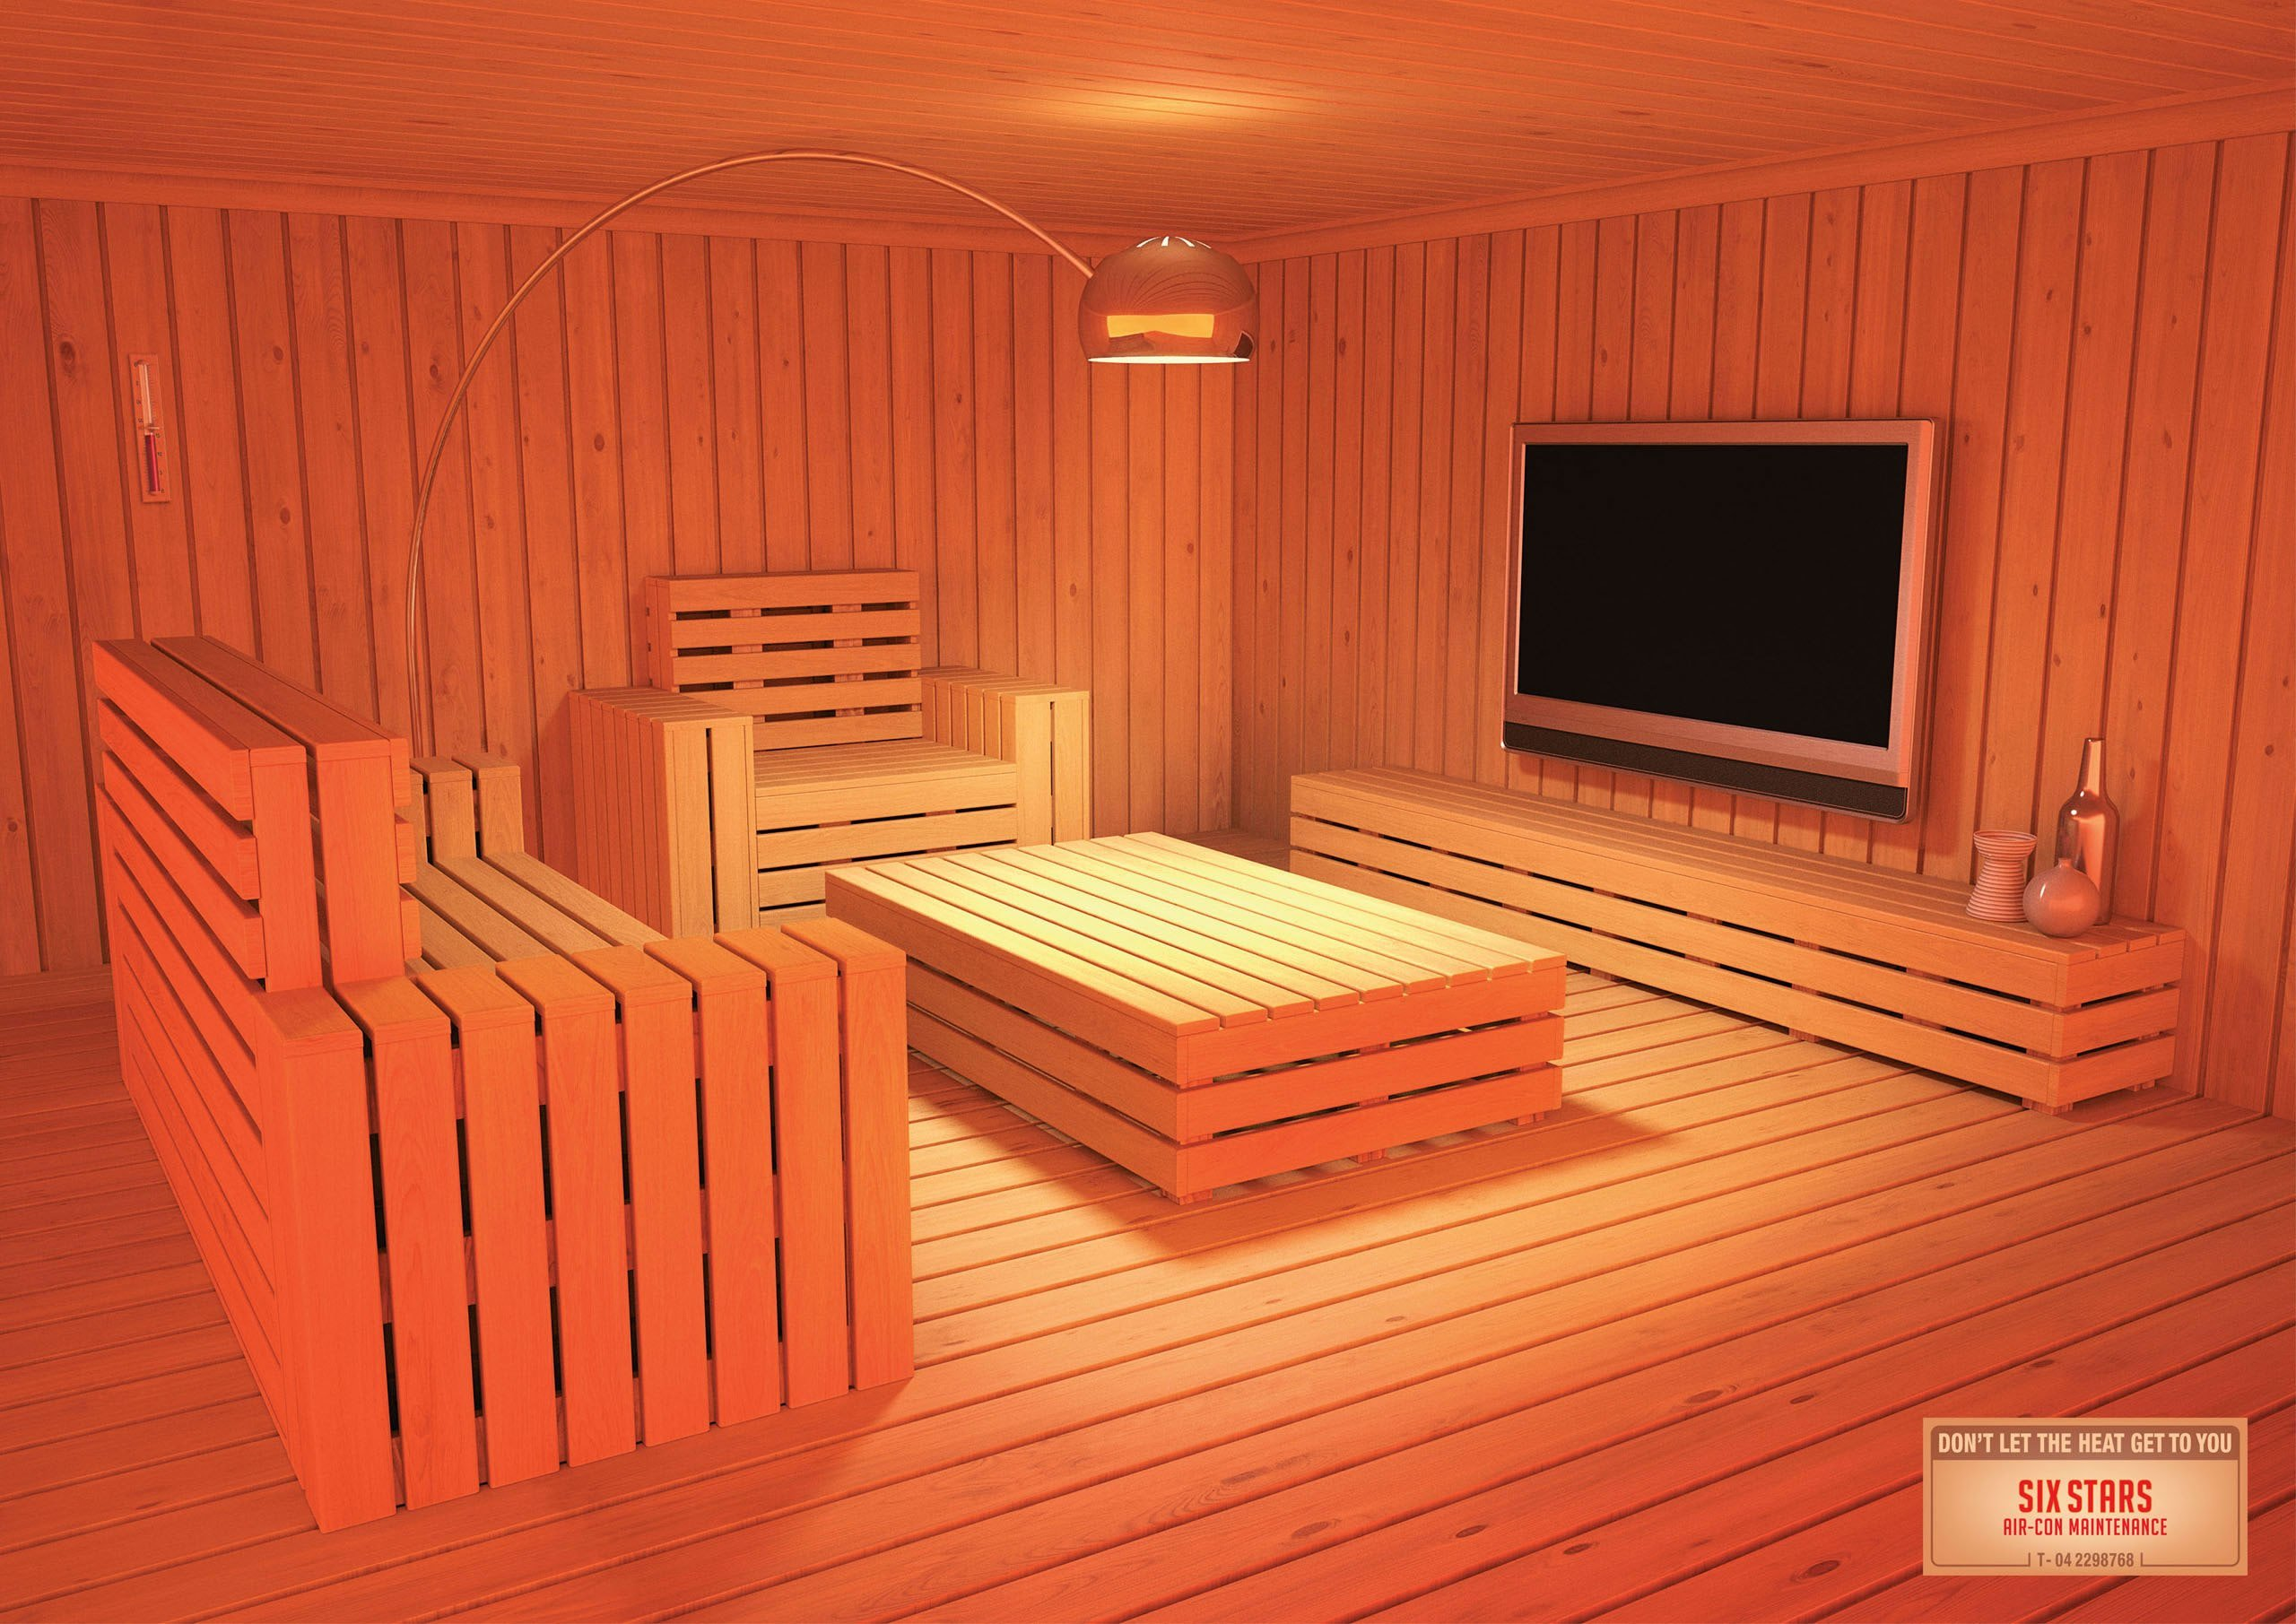 Best Six Stars Air Con Maintenance Living Room Sauna Bedroom With Pictures